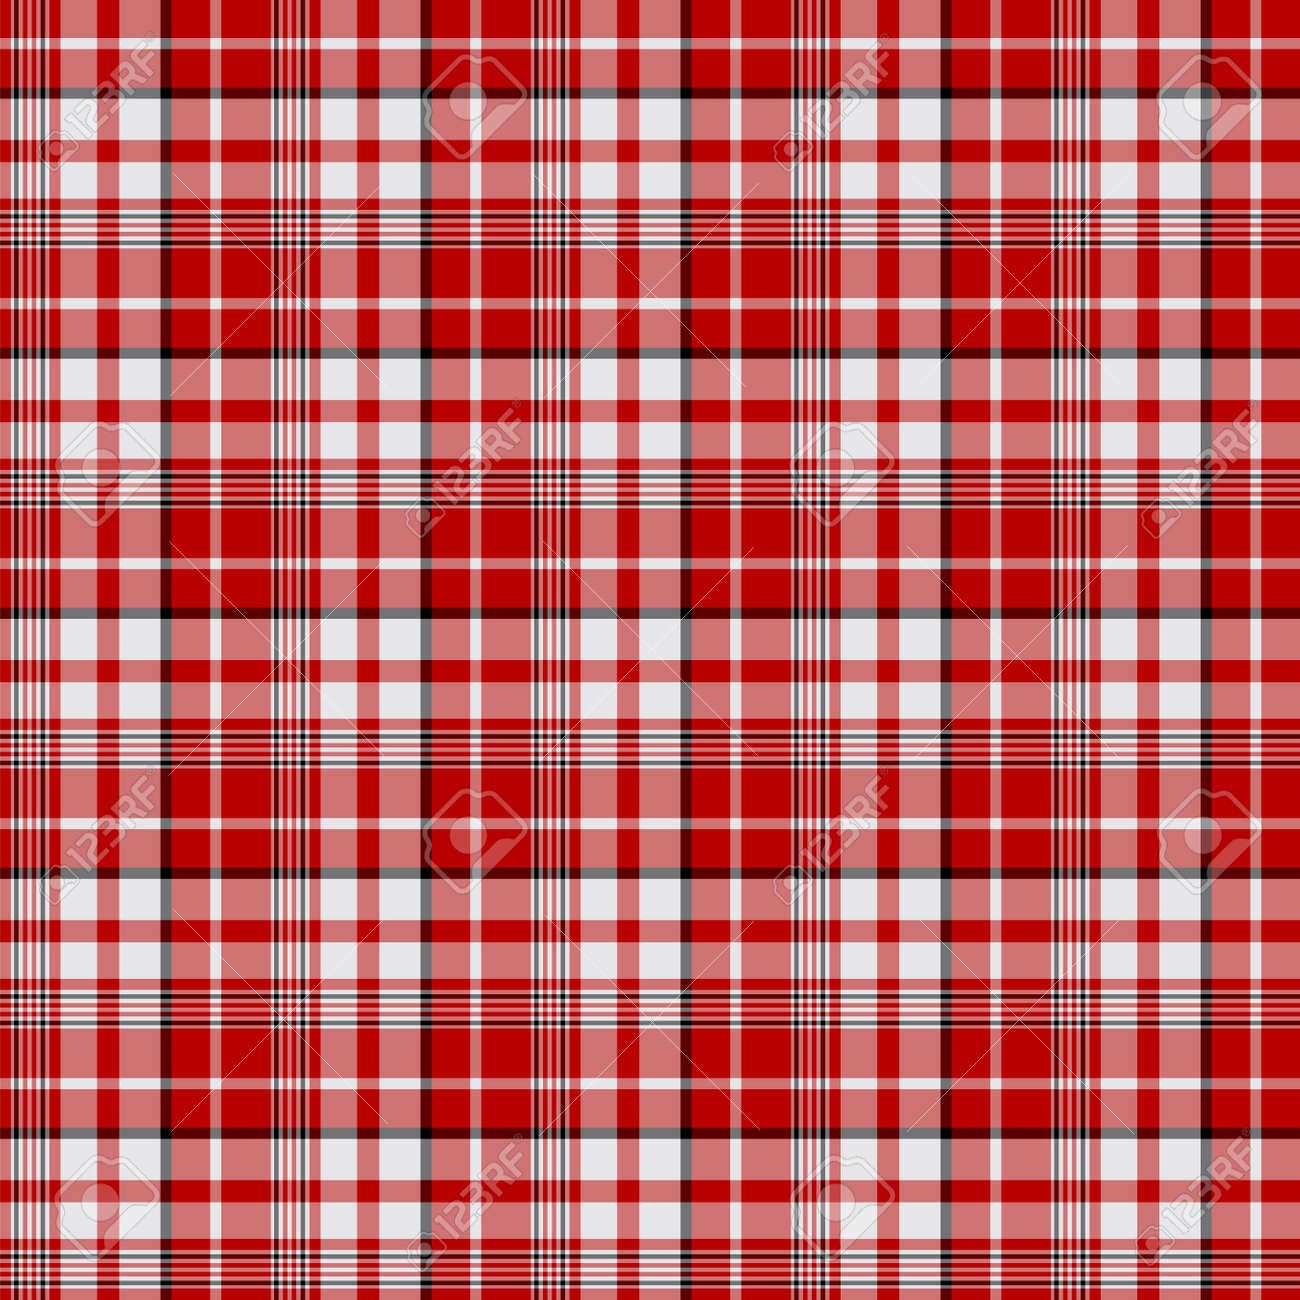 Tartan plaid pattern background. Texture for plaid, tablecloths, clothes, shirts, dresses, paper, bedding, blankets, quilts and other textile products. Vector illustration EPS 10 - 158348483